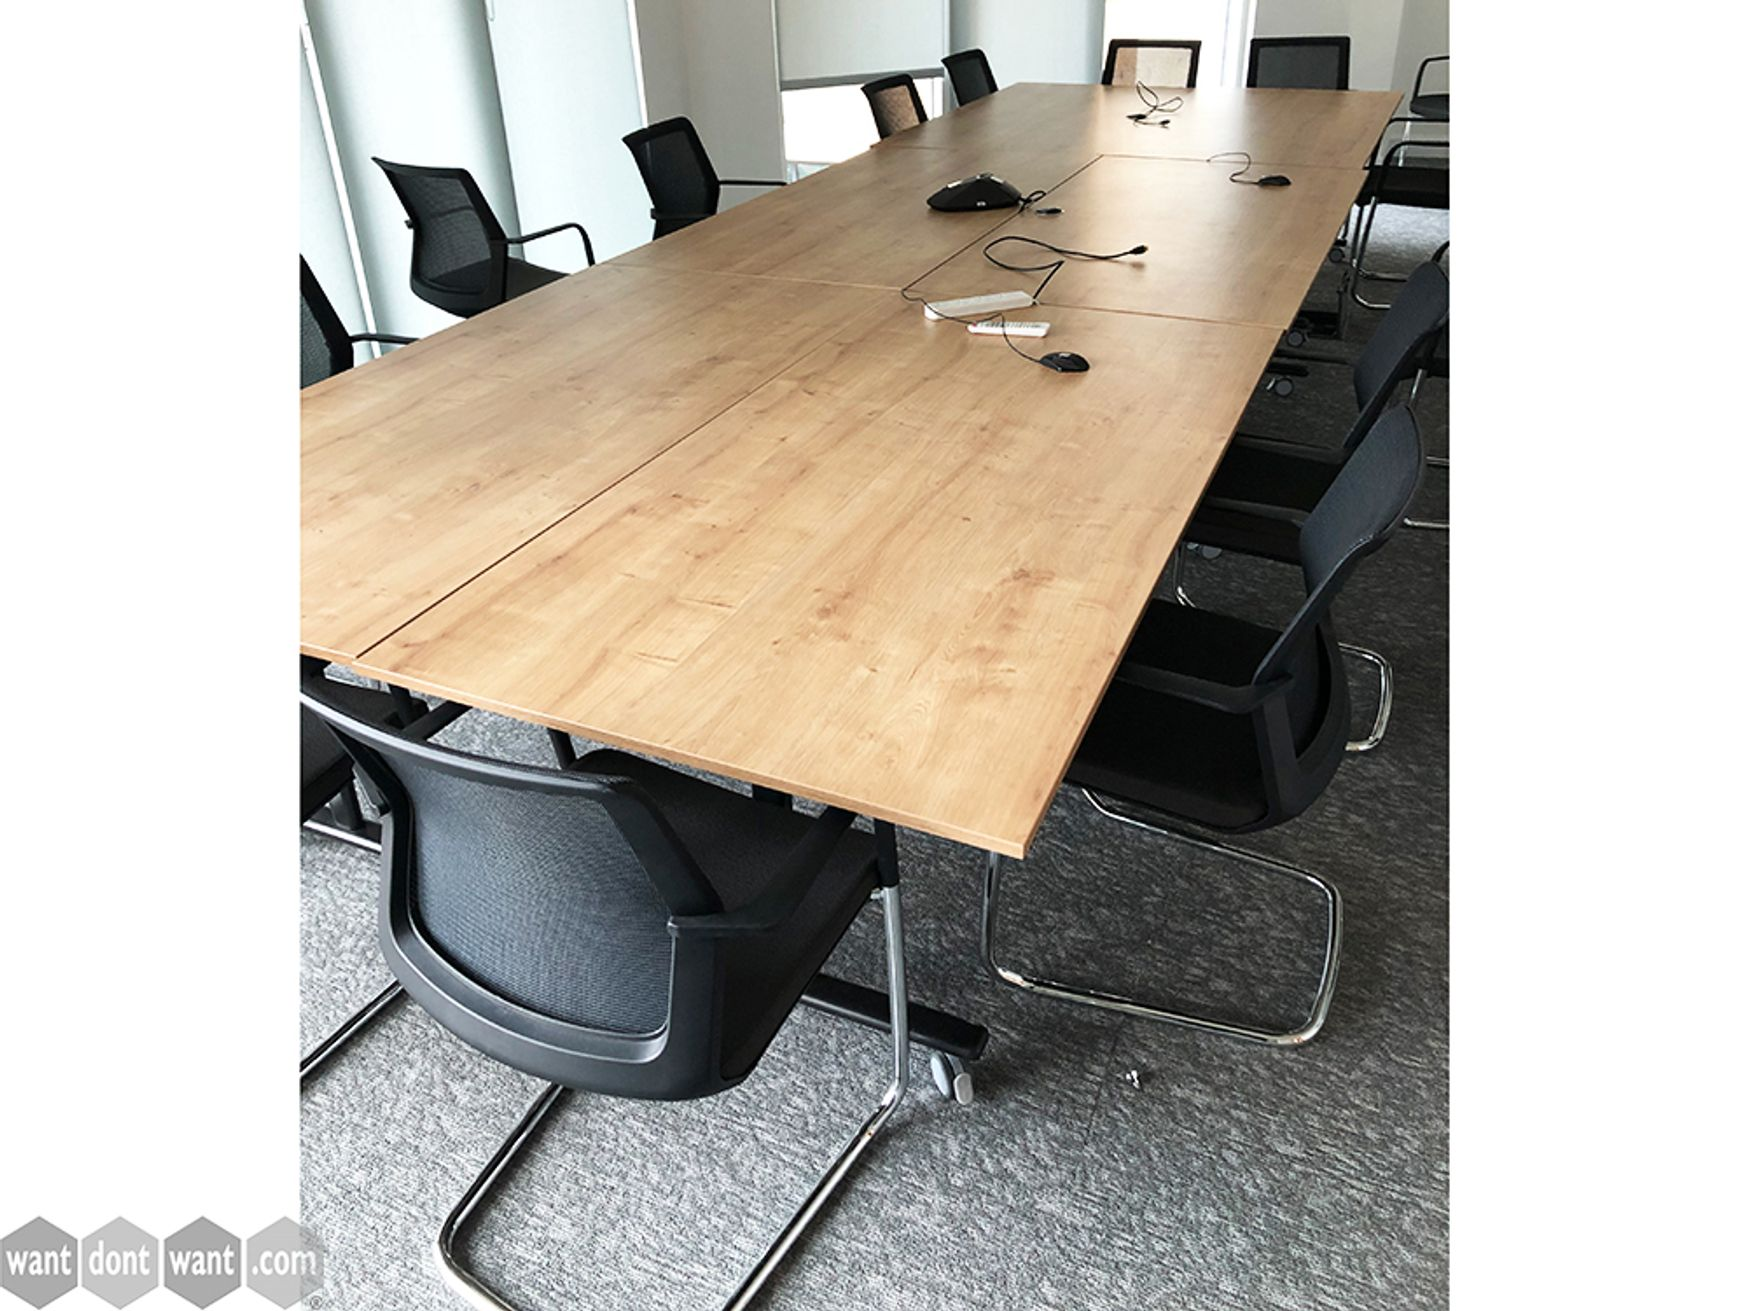 Used Techo 1800mm Flip Top Folding Tables in Natural Oak